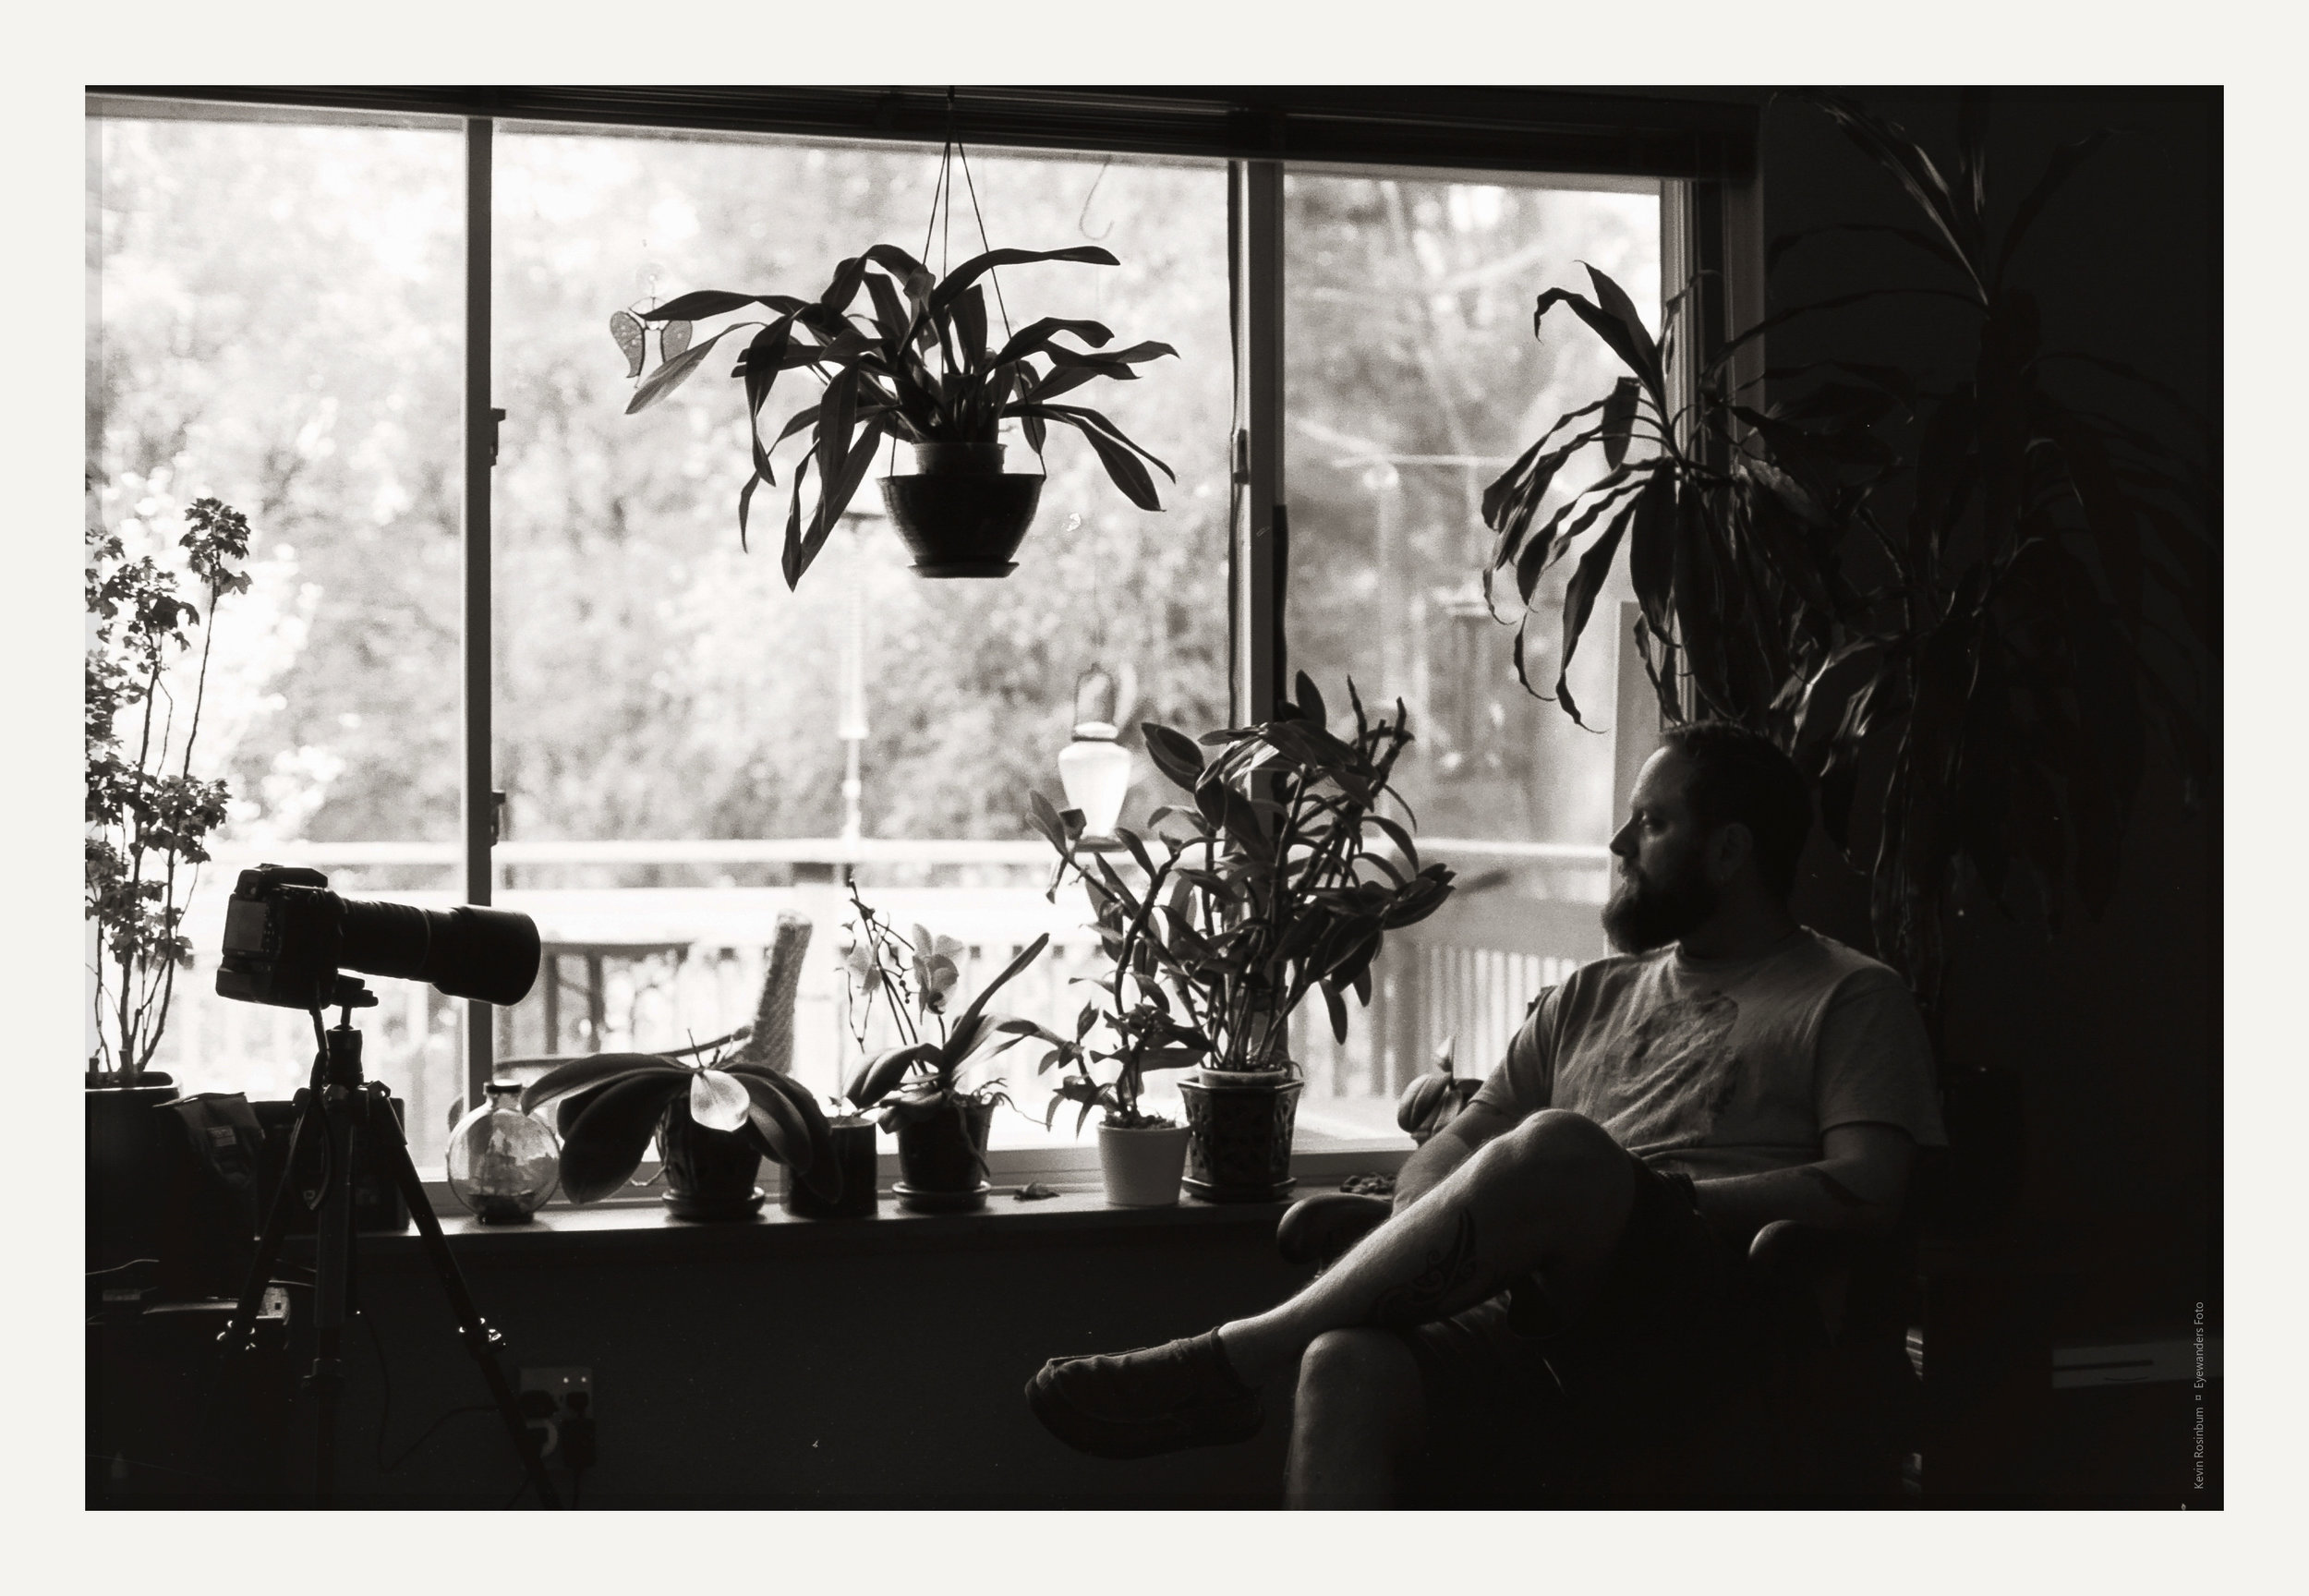 At Home in Right Light | Nikkormat FTn |  TMax 100 | Kevin Rosinbum